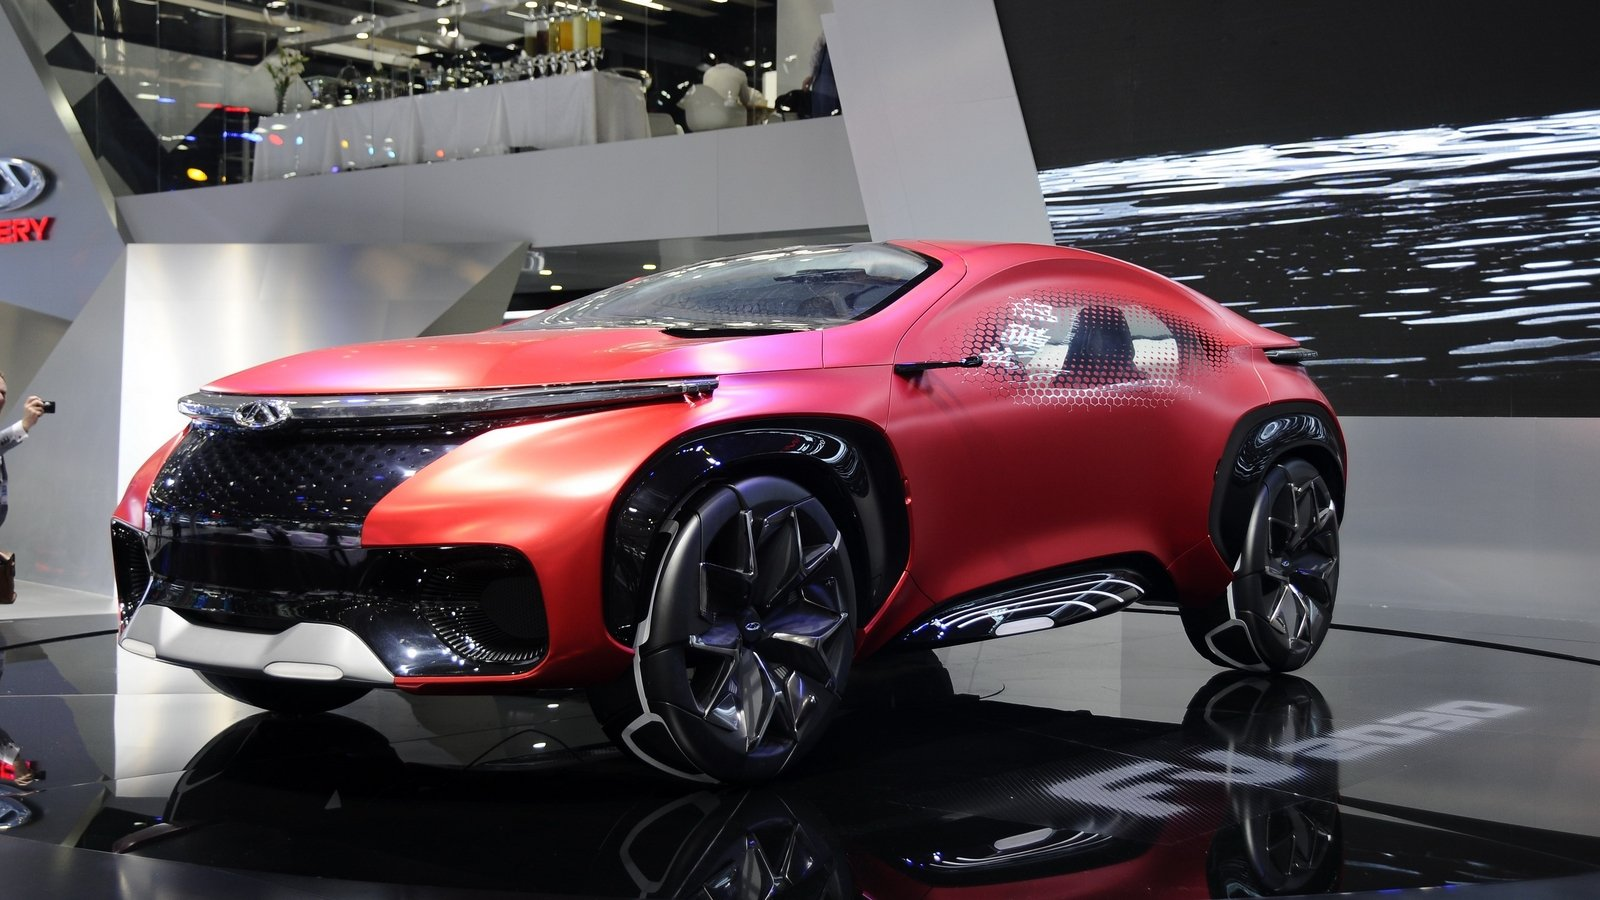 2016 Chery FV2030 Pictures, Photos, Wallpapers. | Top Speed